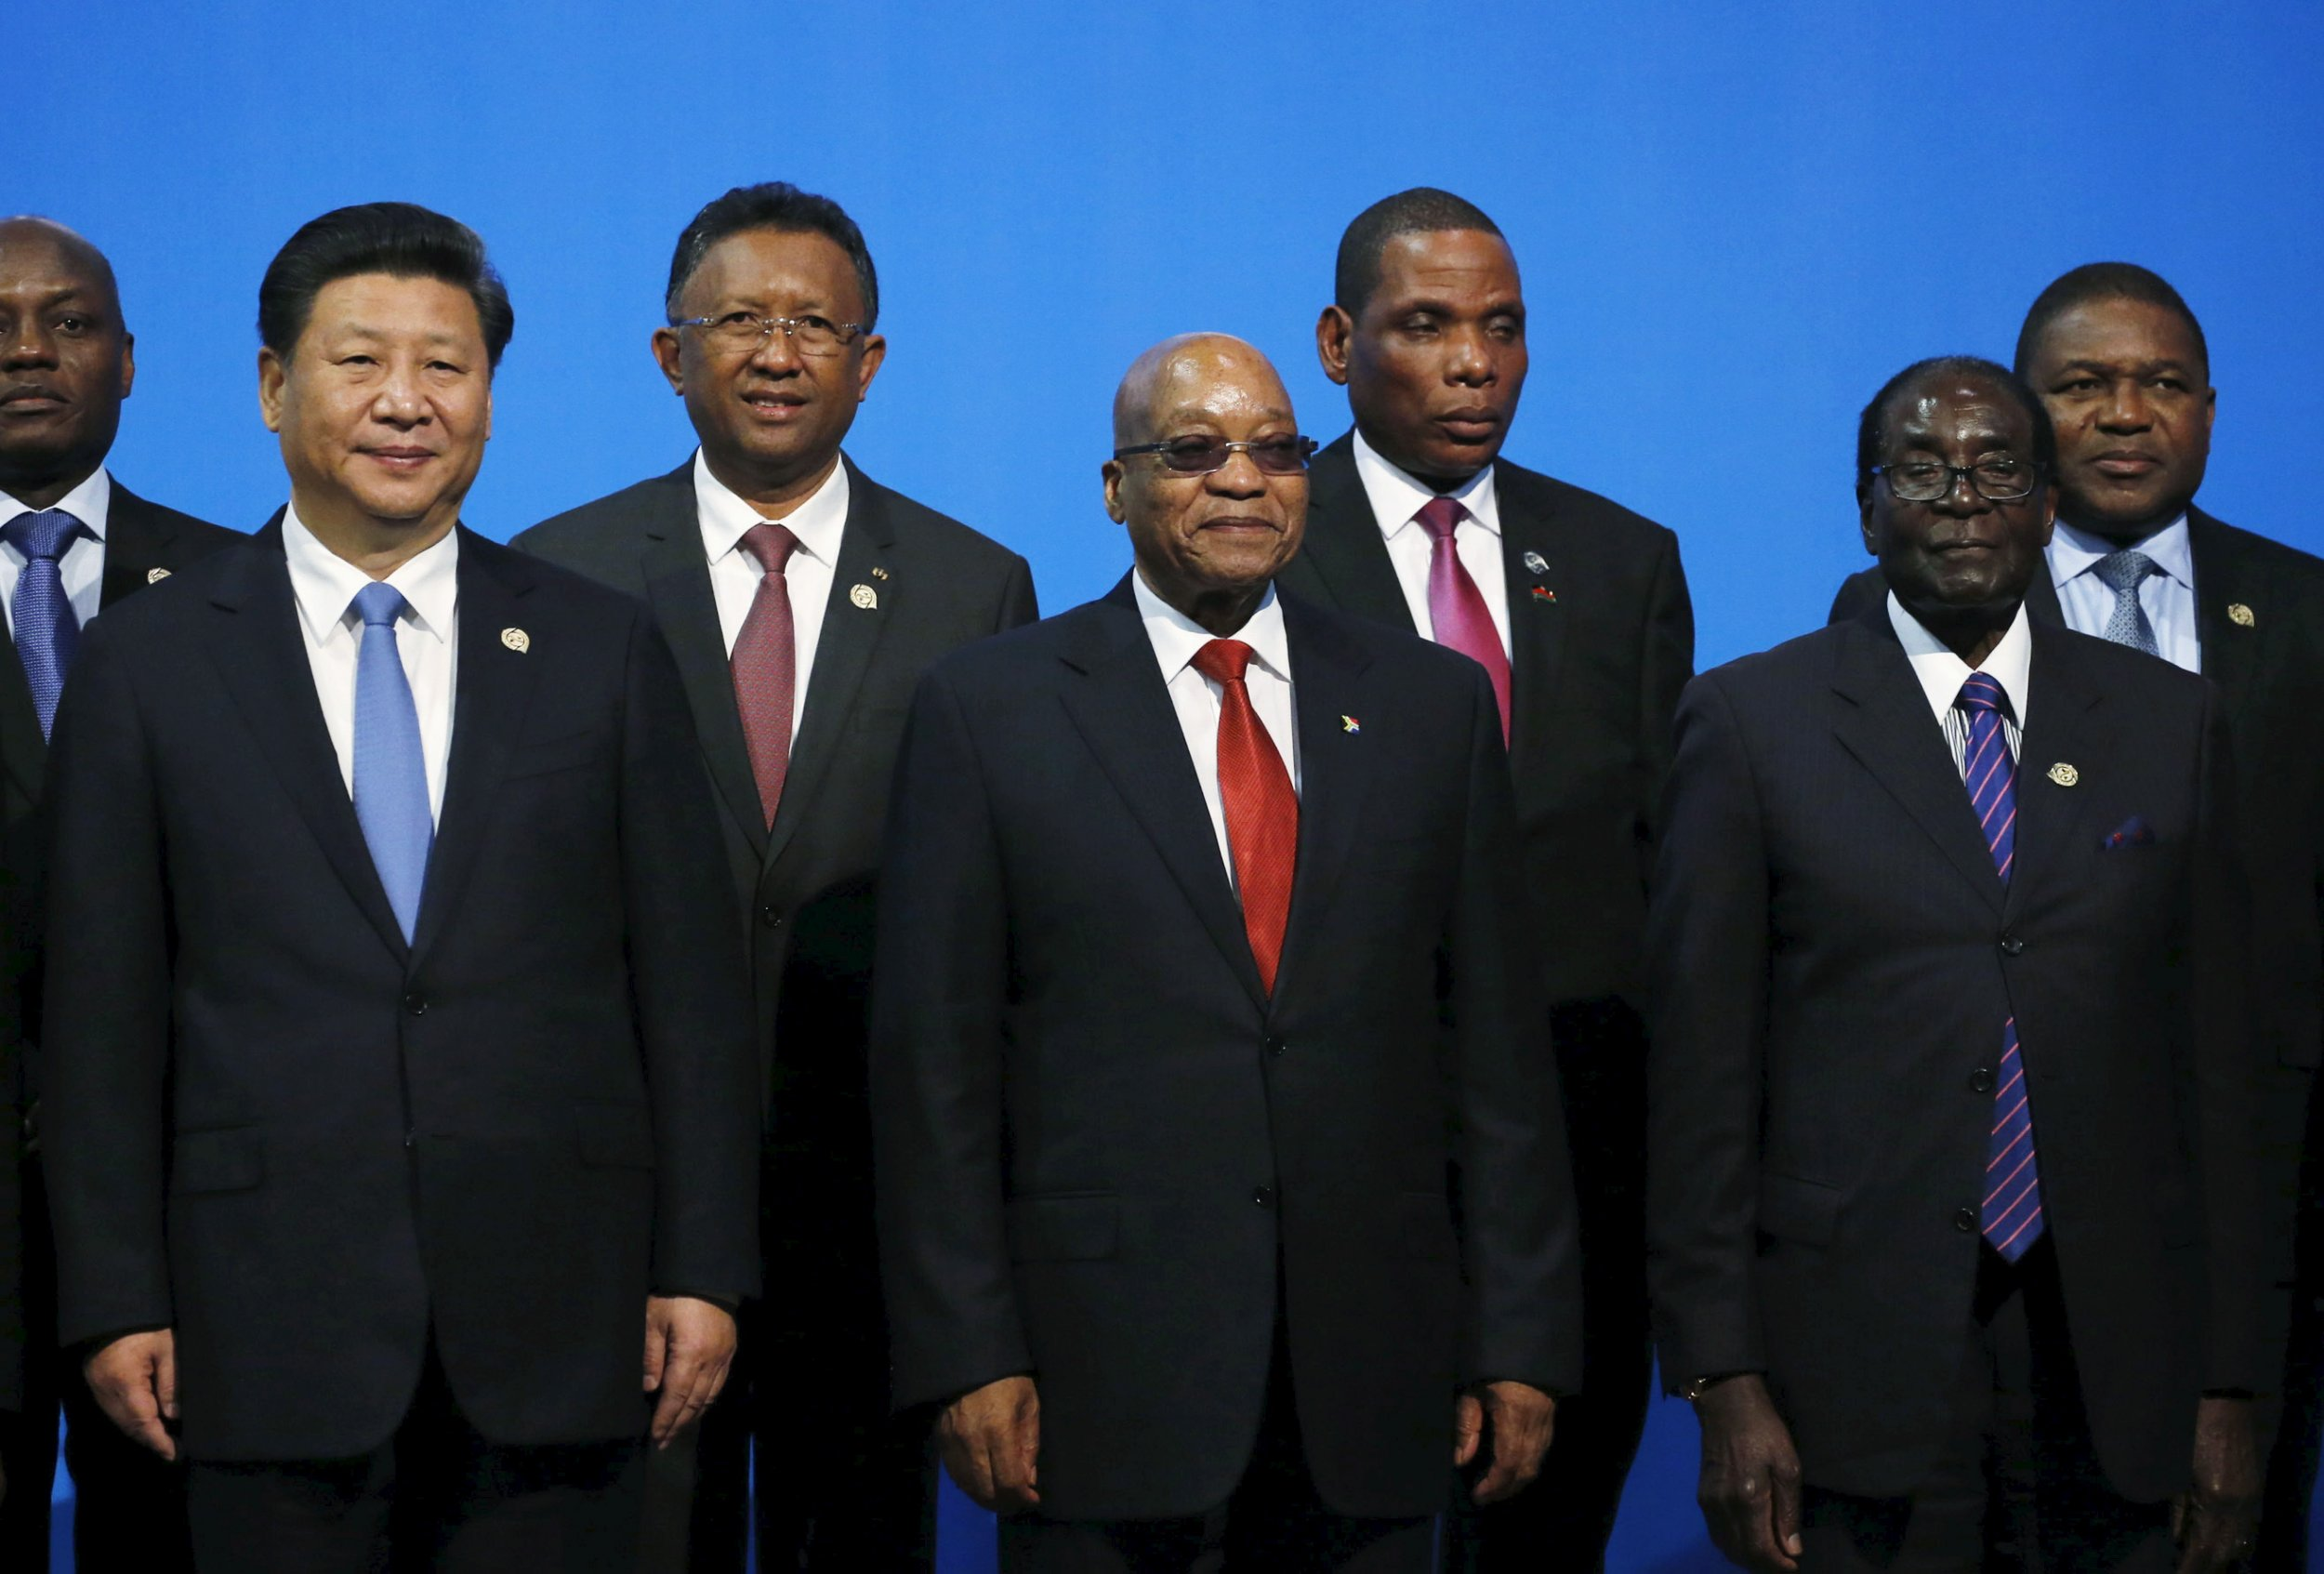 China's Xi Jinping poses with Robert Mugabe and Jacob Zuma.